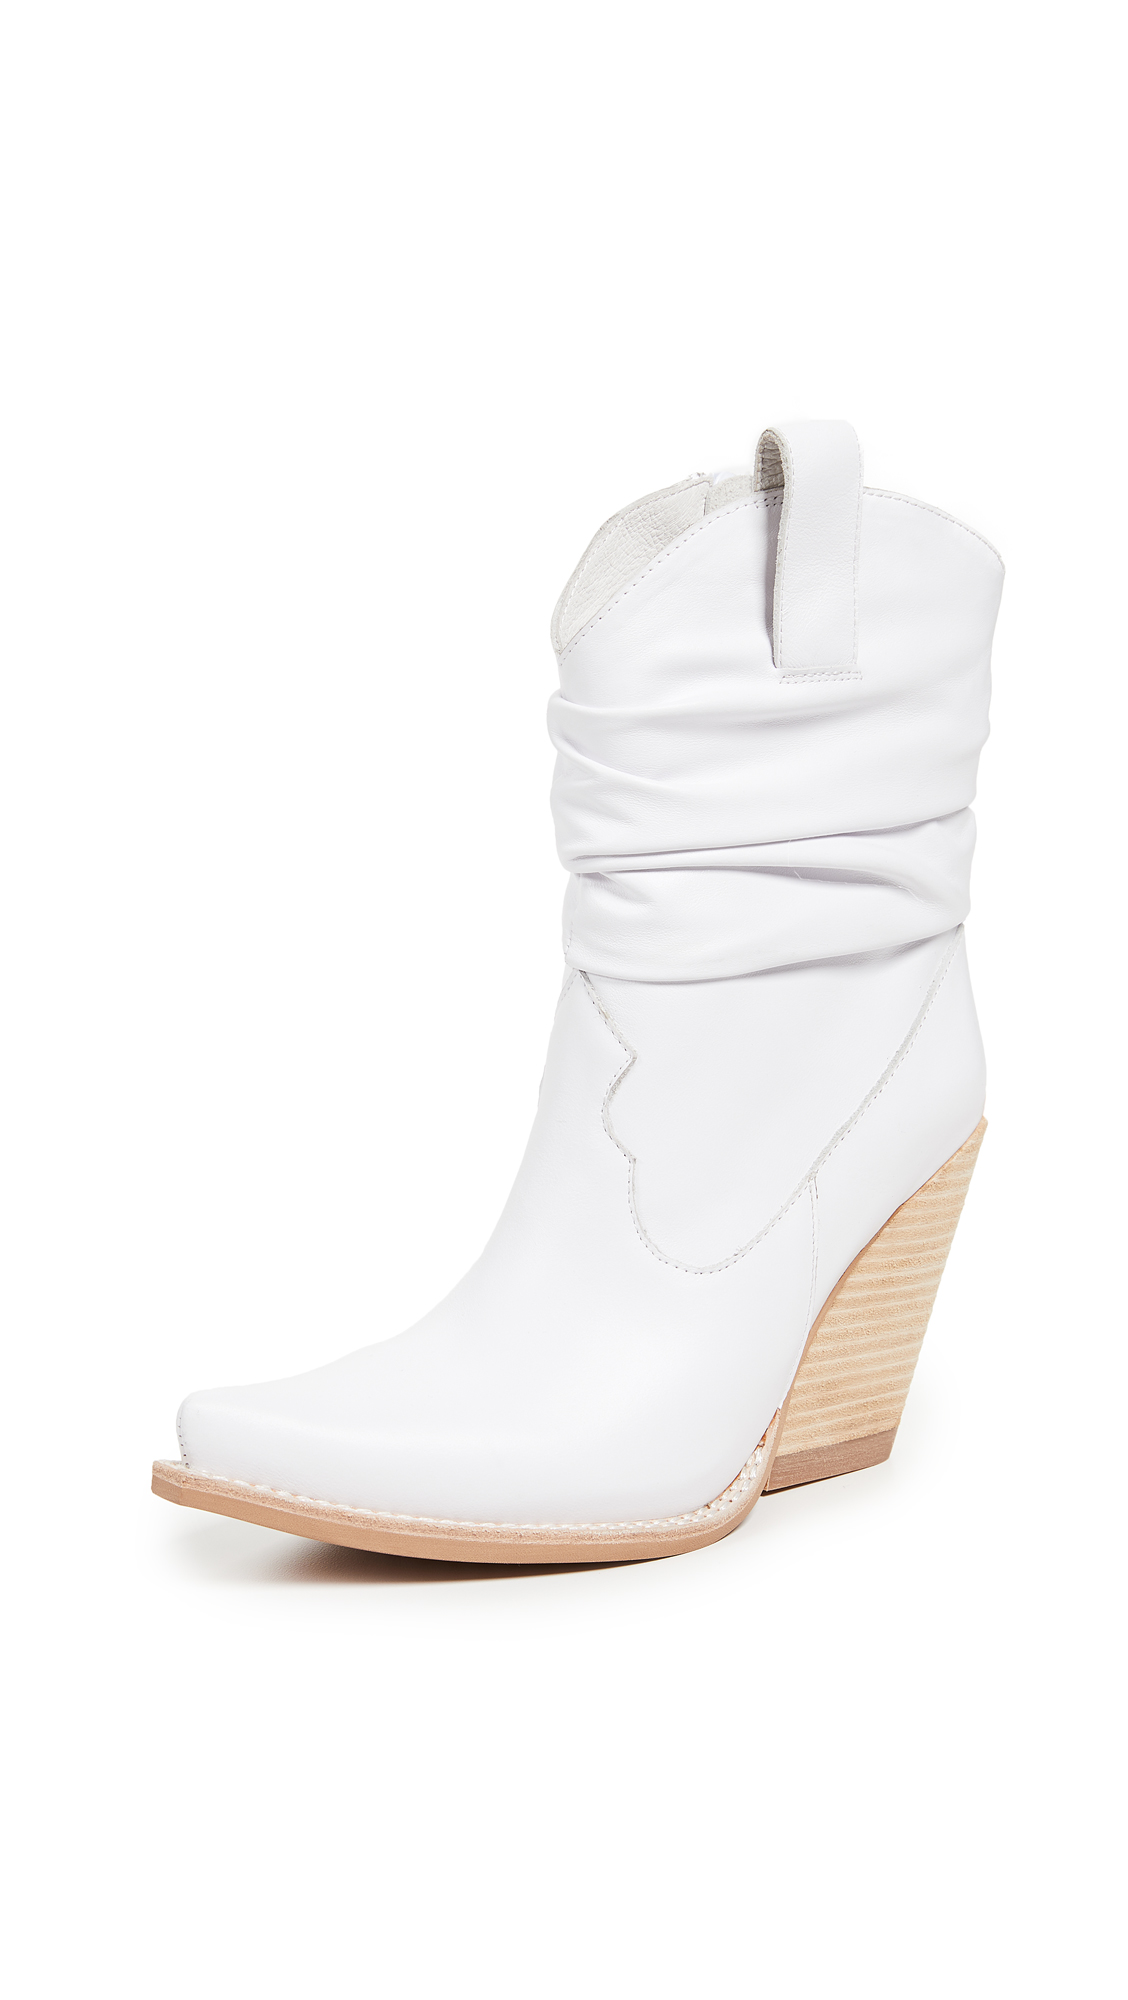 Jeffrey Campbell Volcanic Western Booties - White/Tan